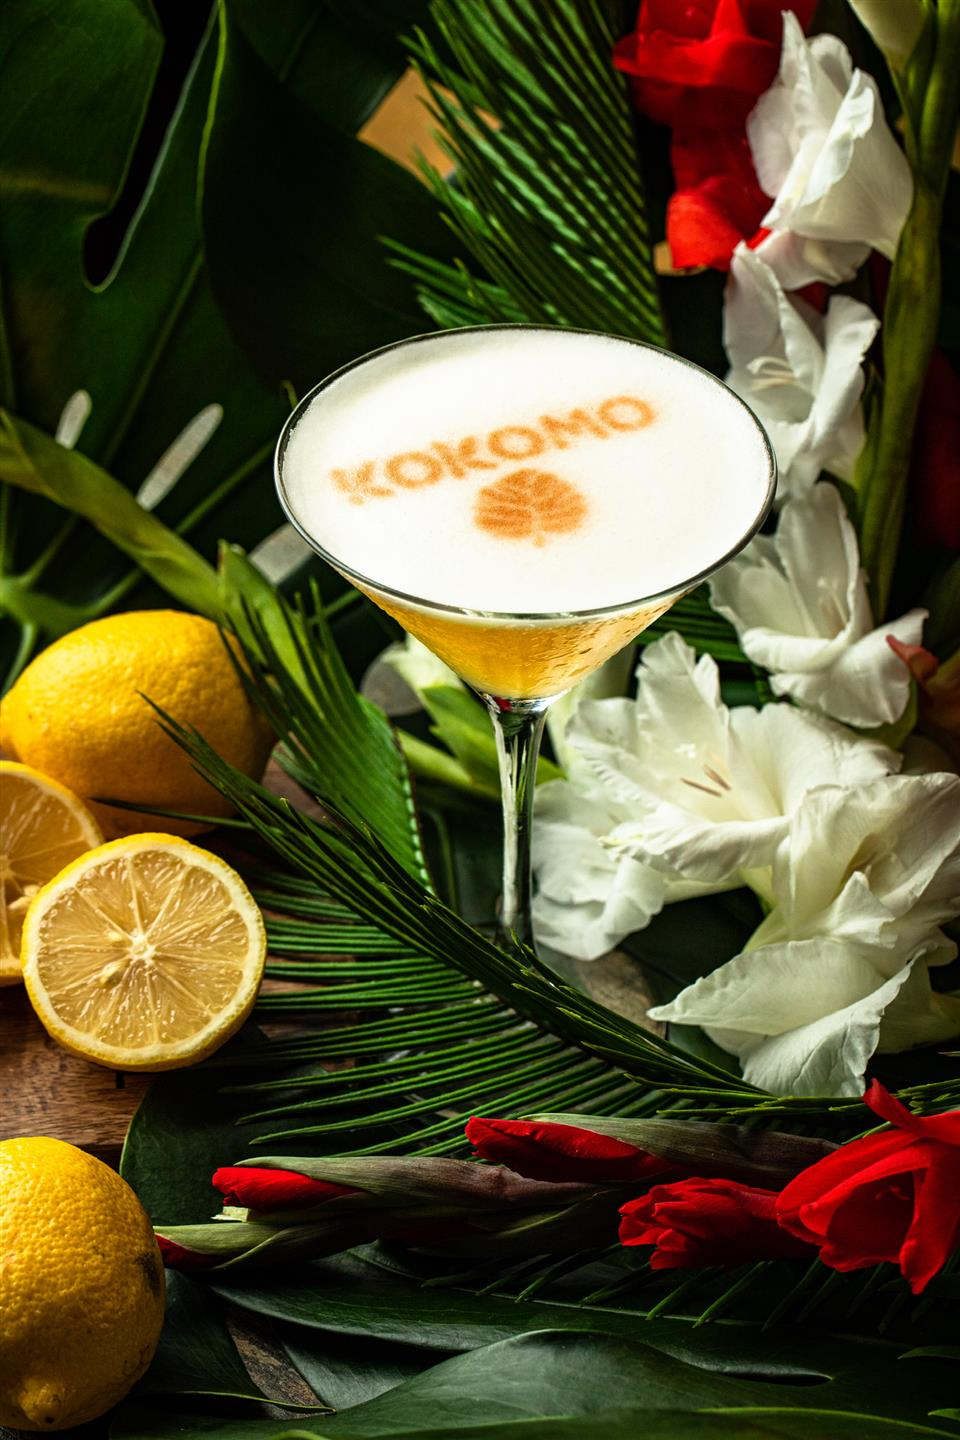 """martini glass filled with a design that says """"Kokomo"""" on the foam of drink. Lemons and flowers surround the glass"""